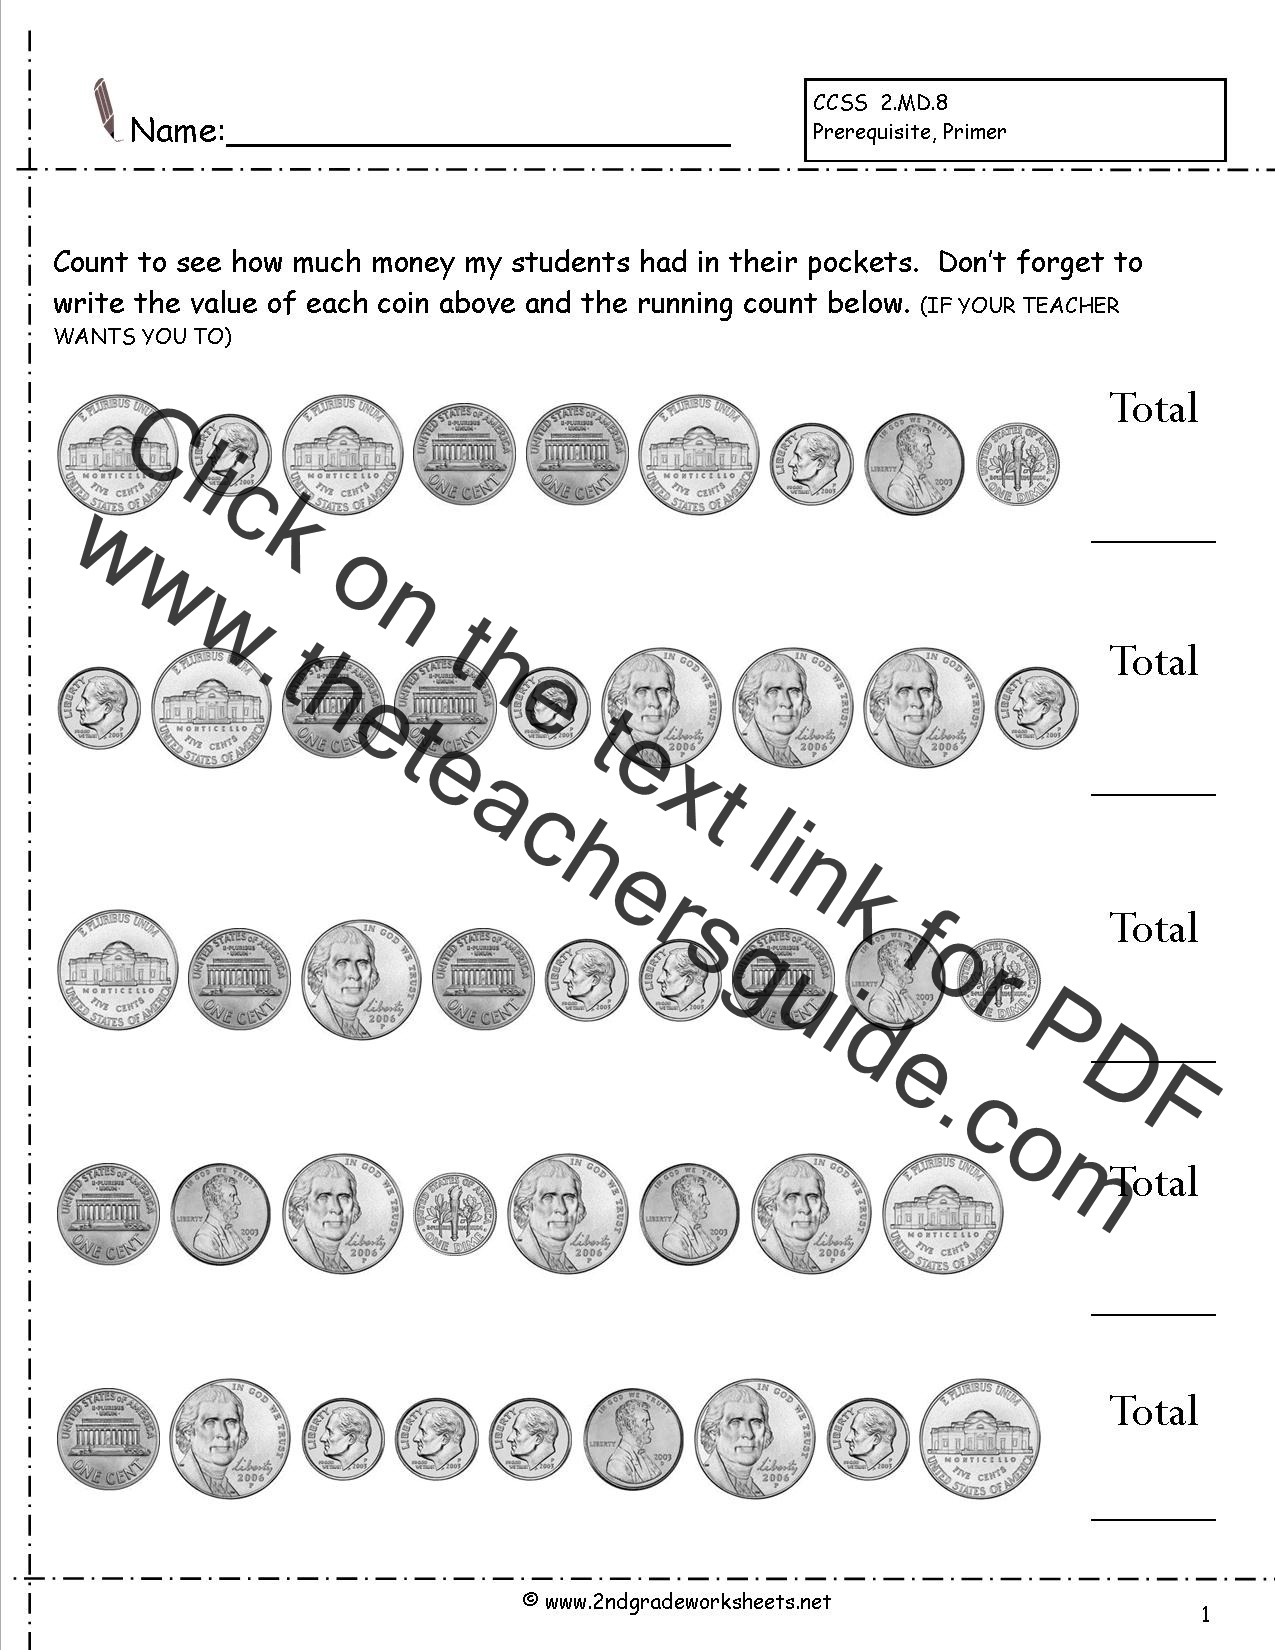 worksheet Counting Pennies Worksheets 1st Grade counting coins and money worksheets printouts worksheet